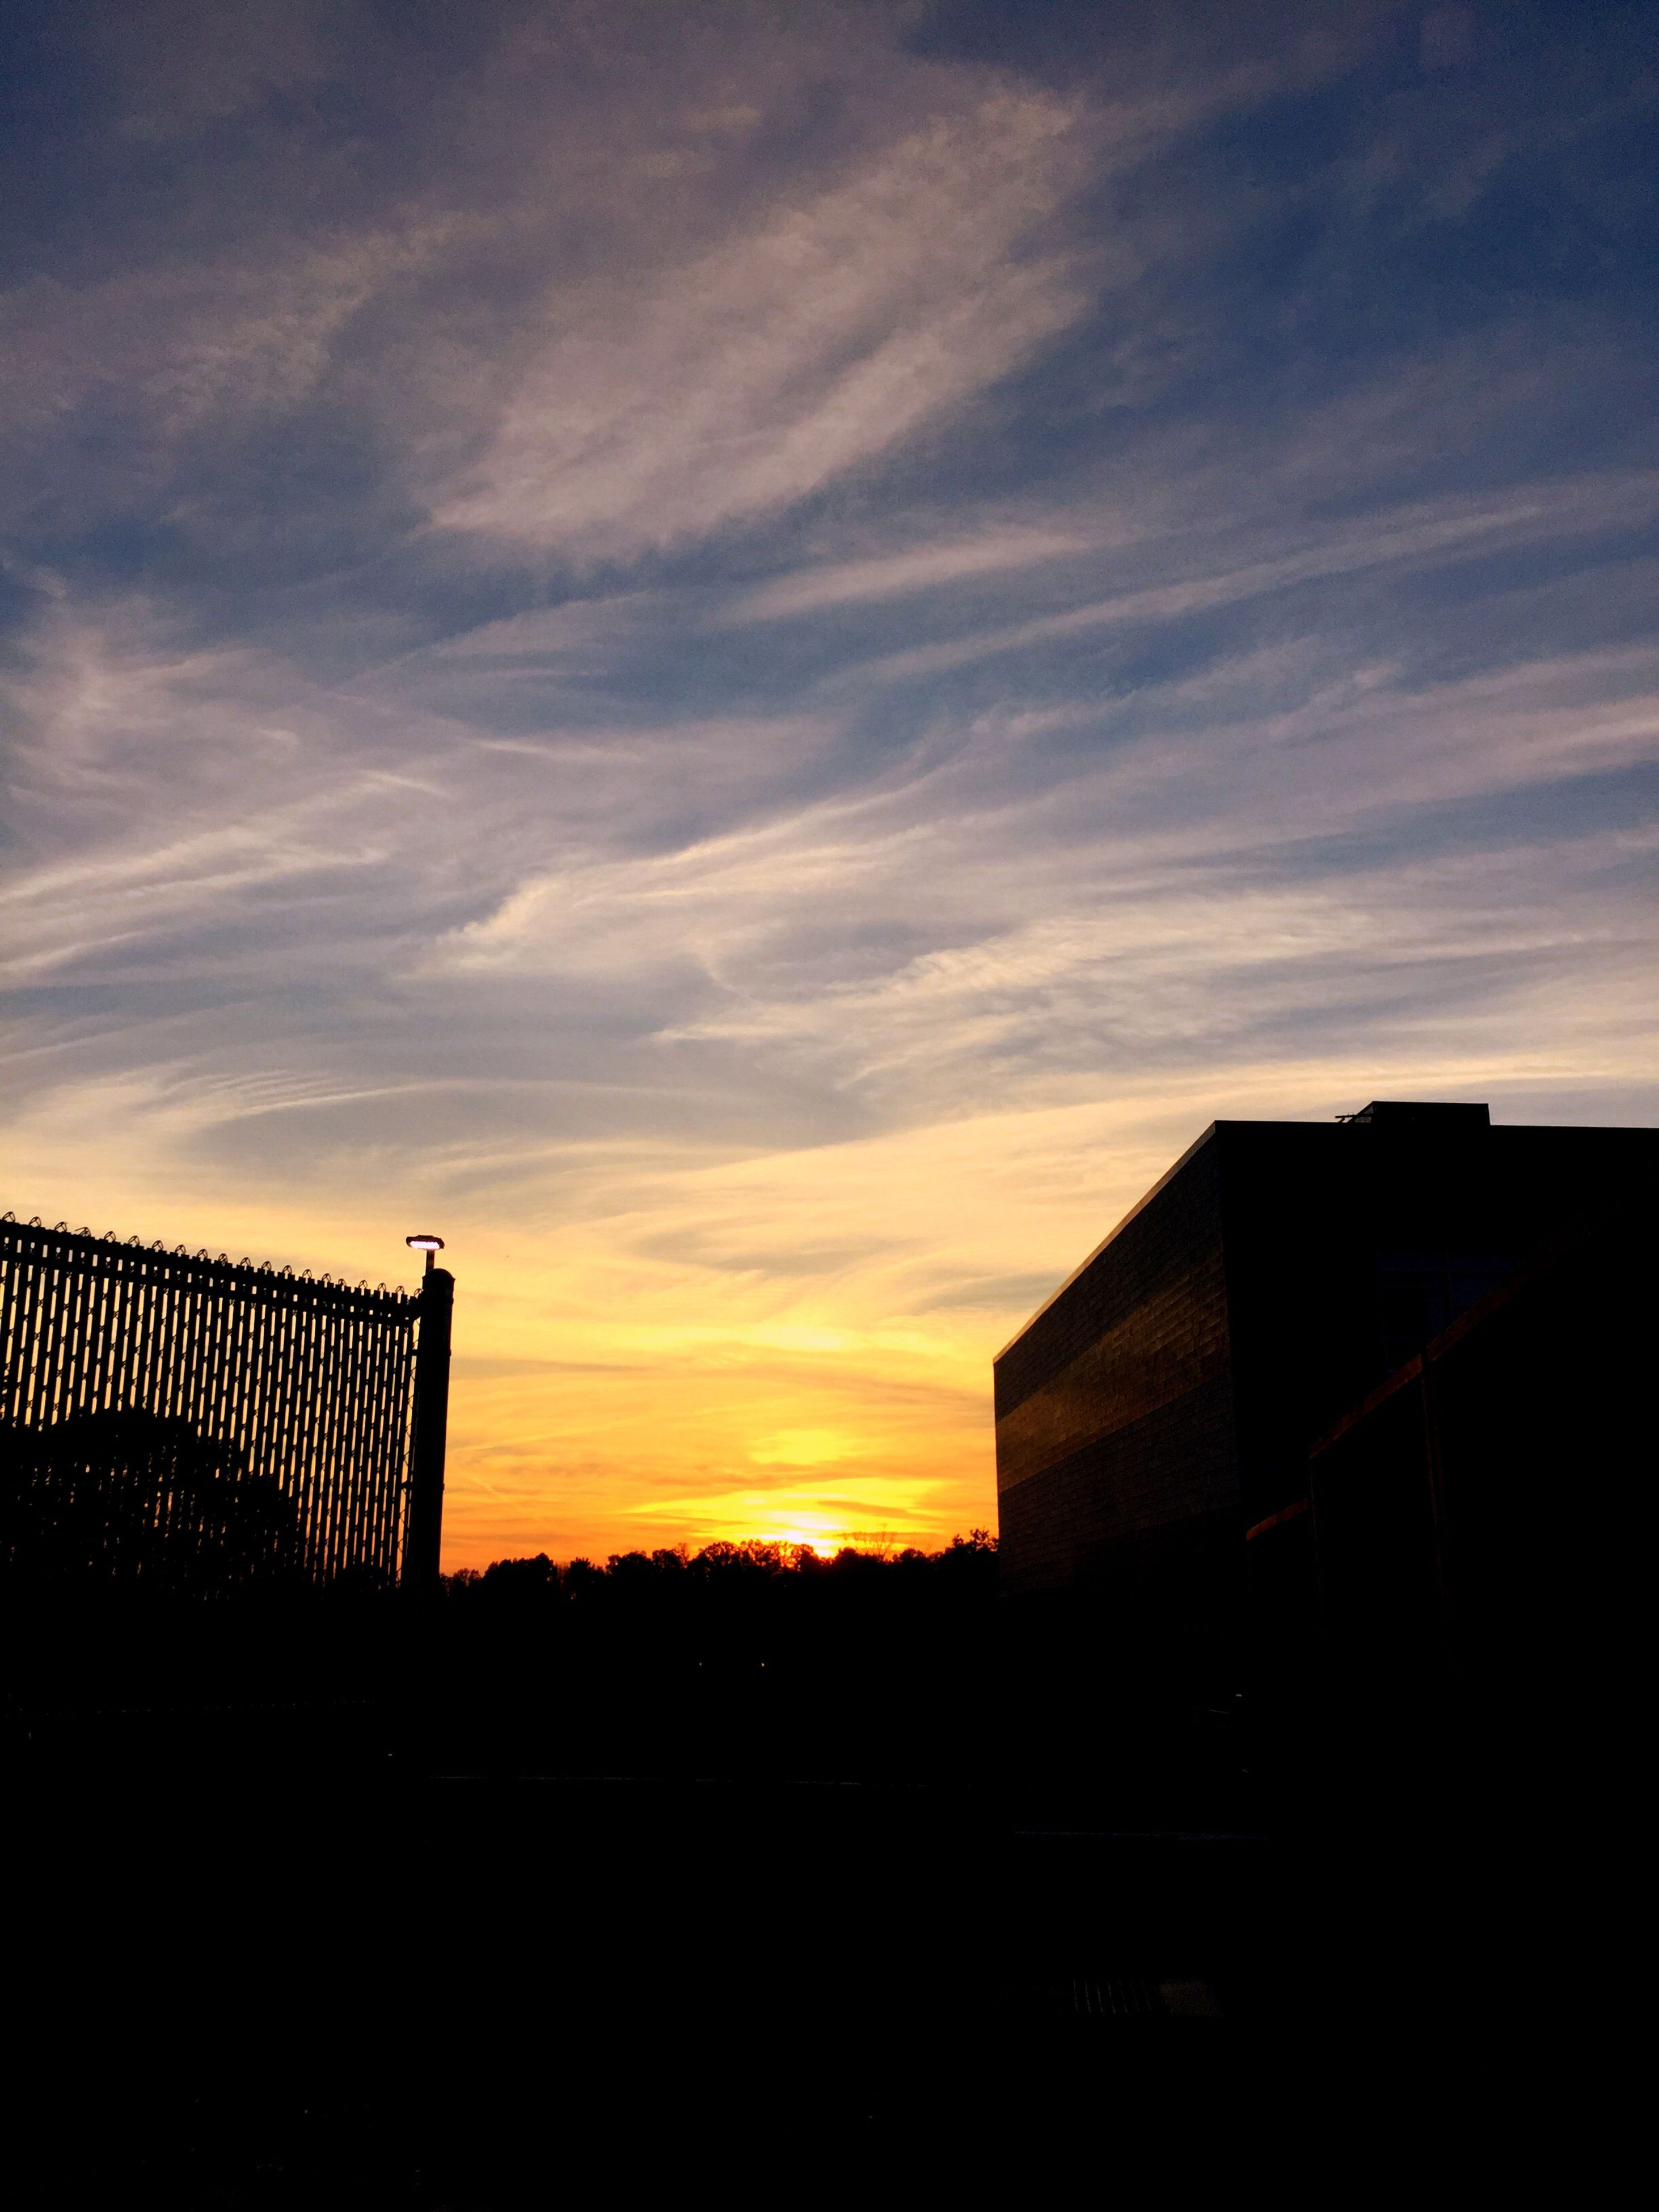 sunset, built structure, sky, silhouette, building exterior, architecture, city, no people, outdoors, nature, beauty in nature, day